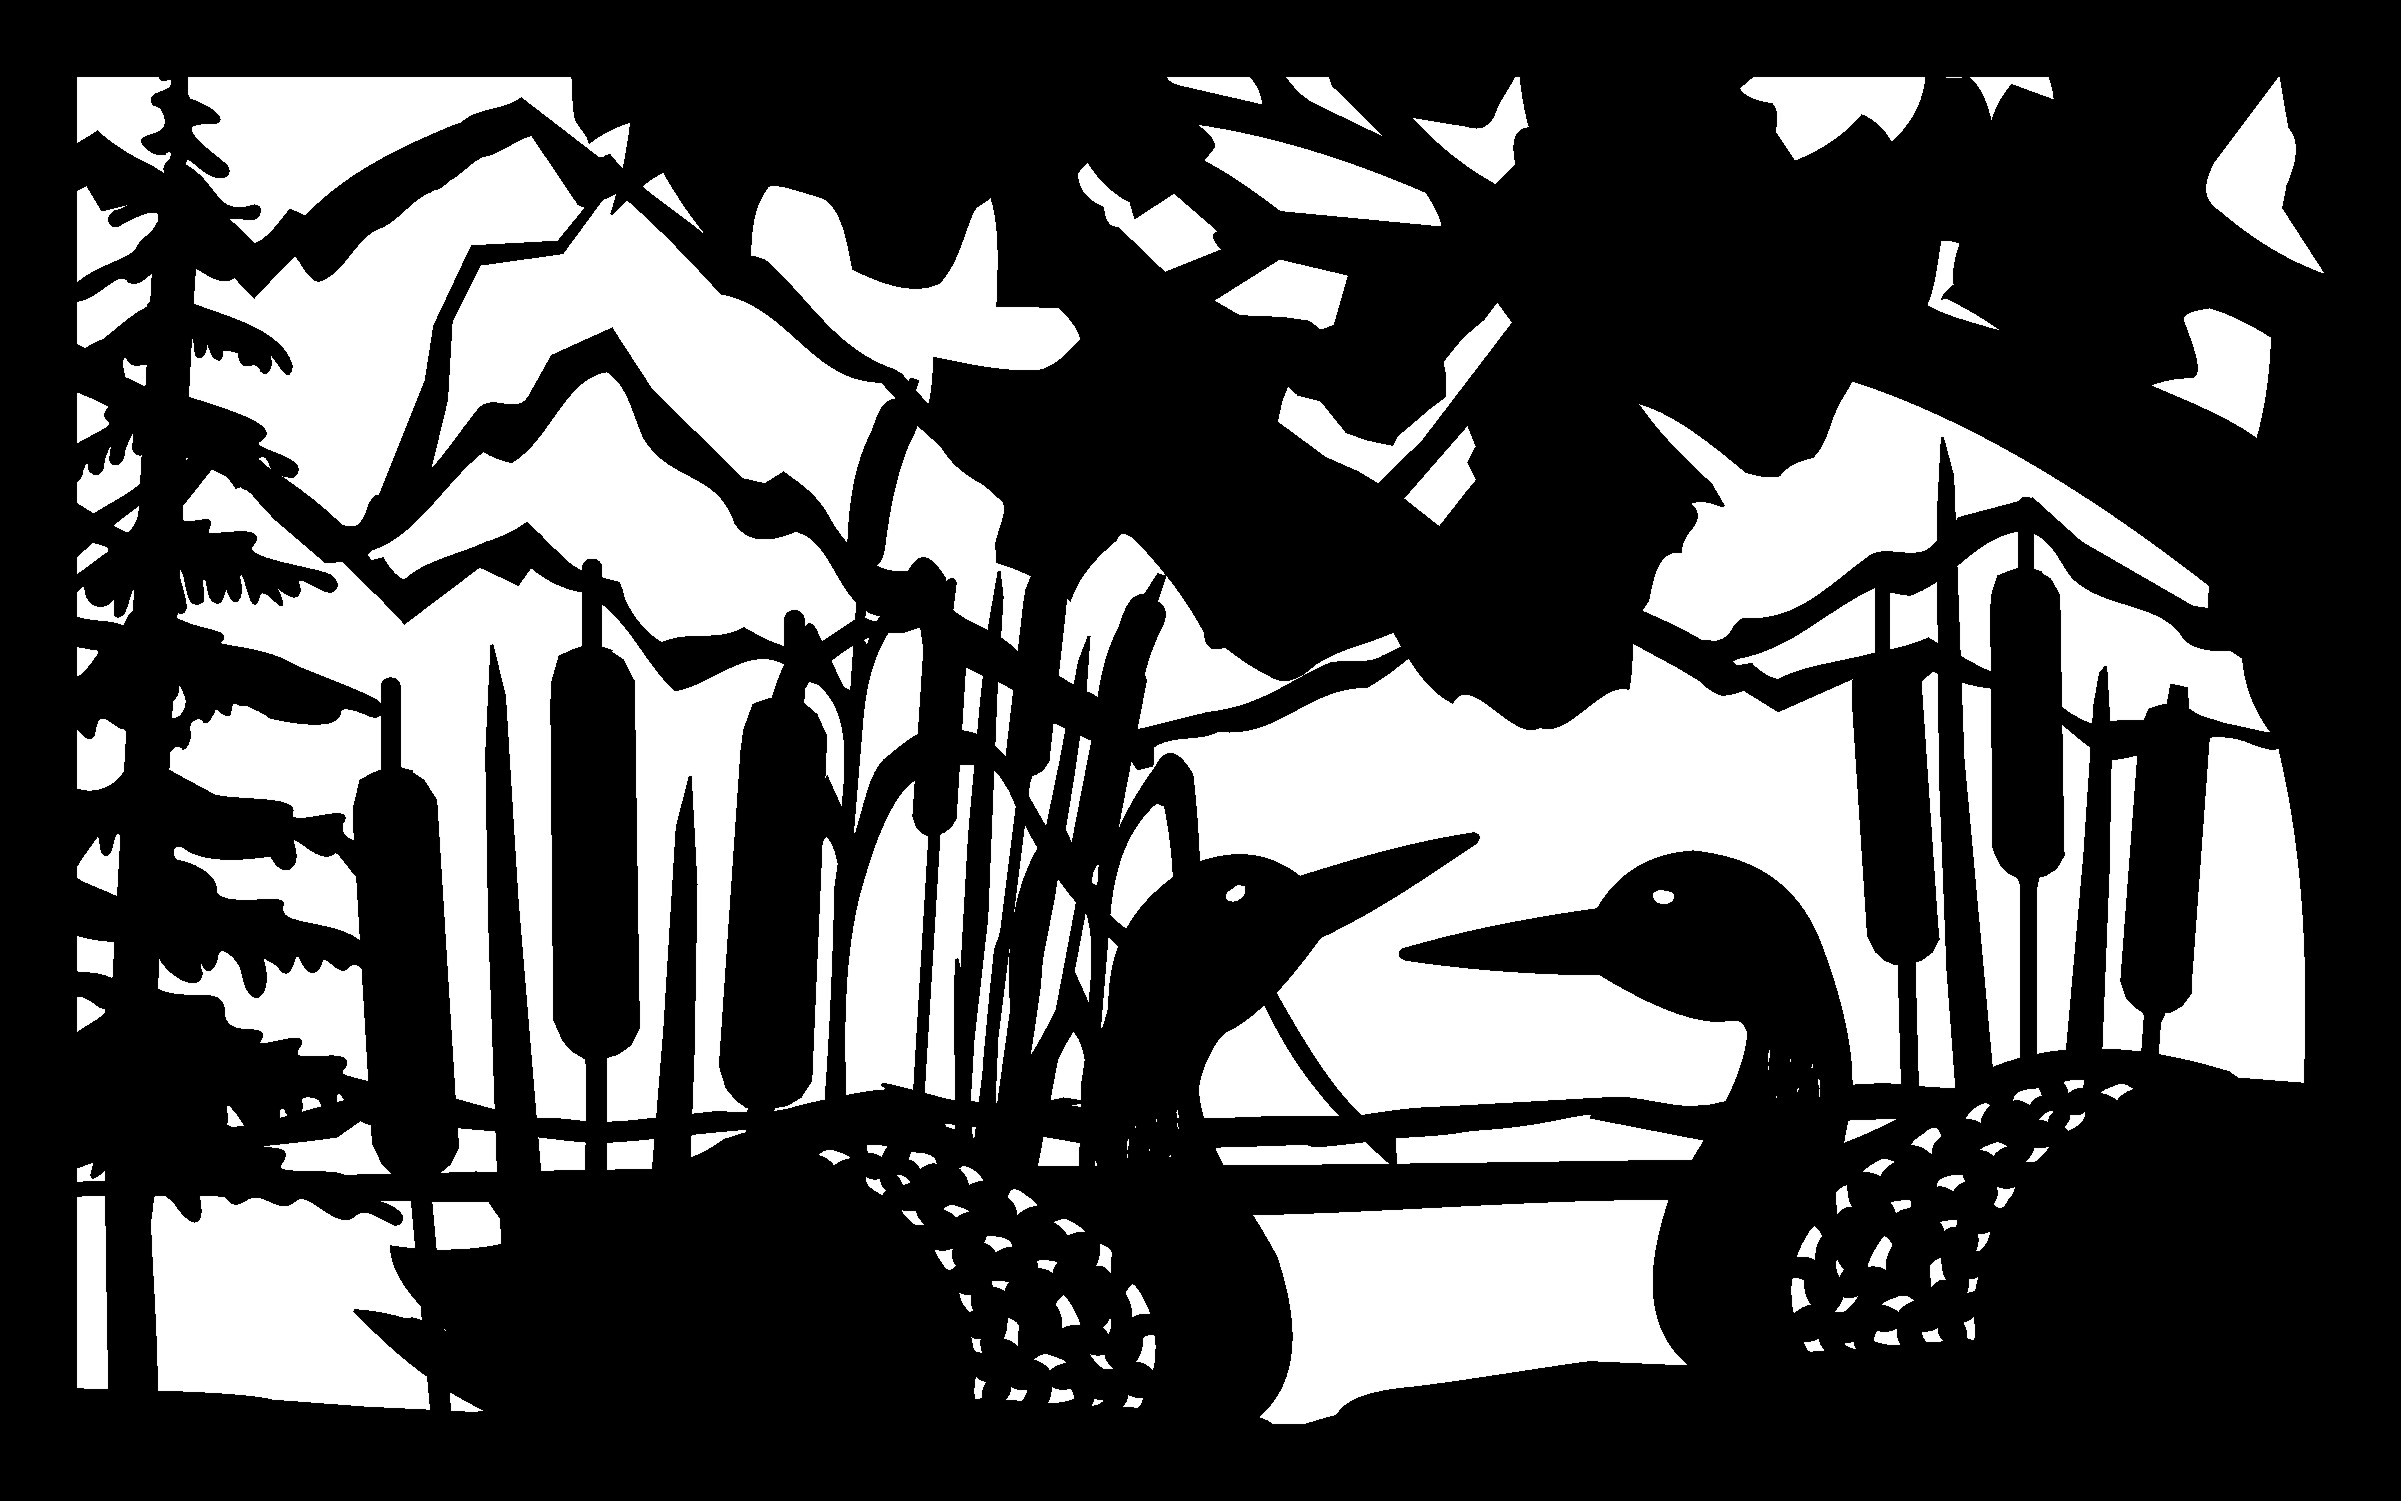 30 X 48 Loon Panel Cattails Mountains Plasma Art DXF File